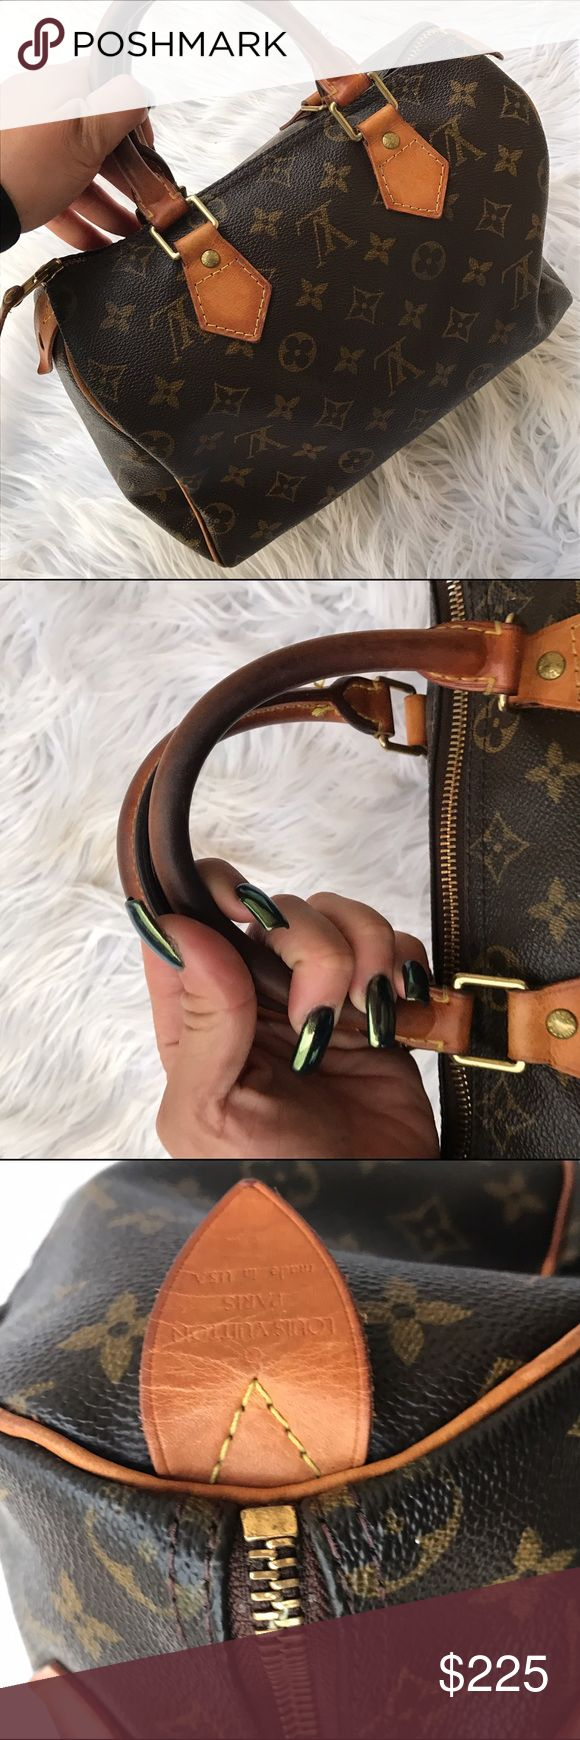 "LOUIS VUITTON SPEEDY BAG PURSE ALL LEATHER 100% authentic Louis speedy measures as follows 11"" wide 9"" long 12"" long with strap drop included ❤️ Louis Vuitton Bags"